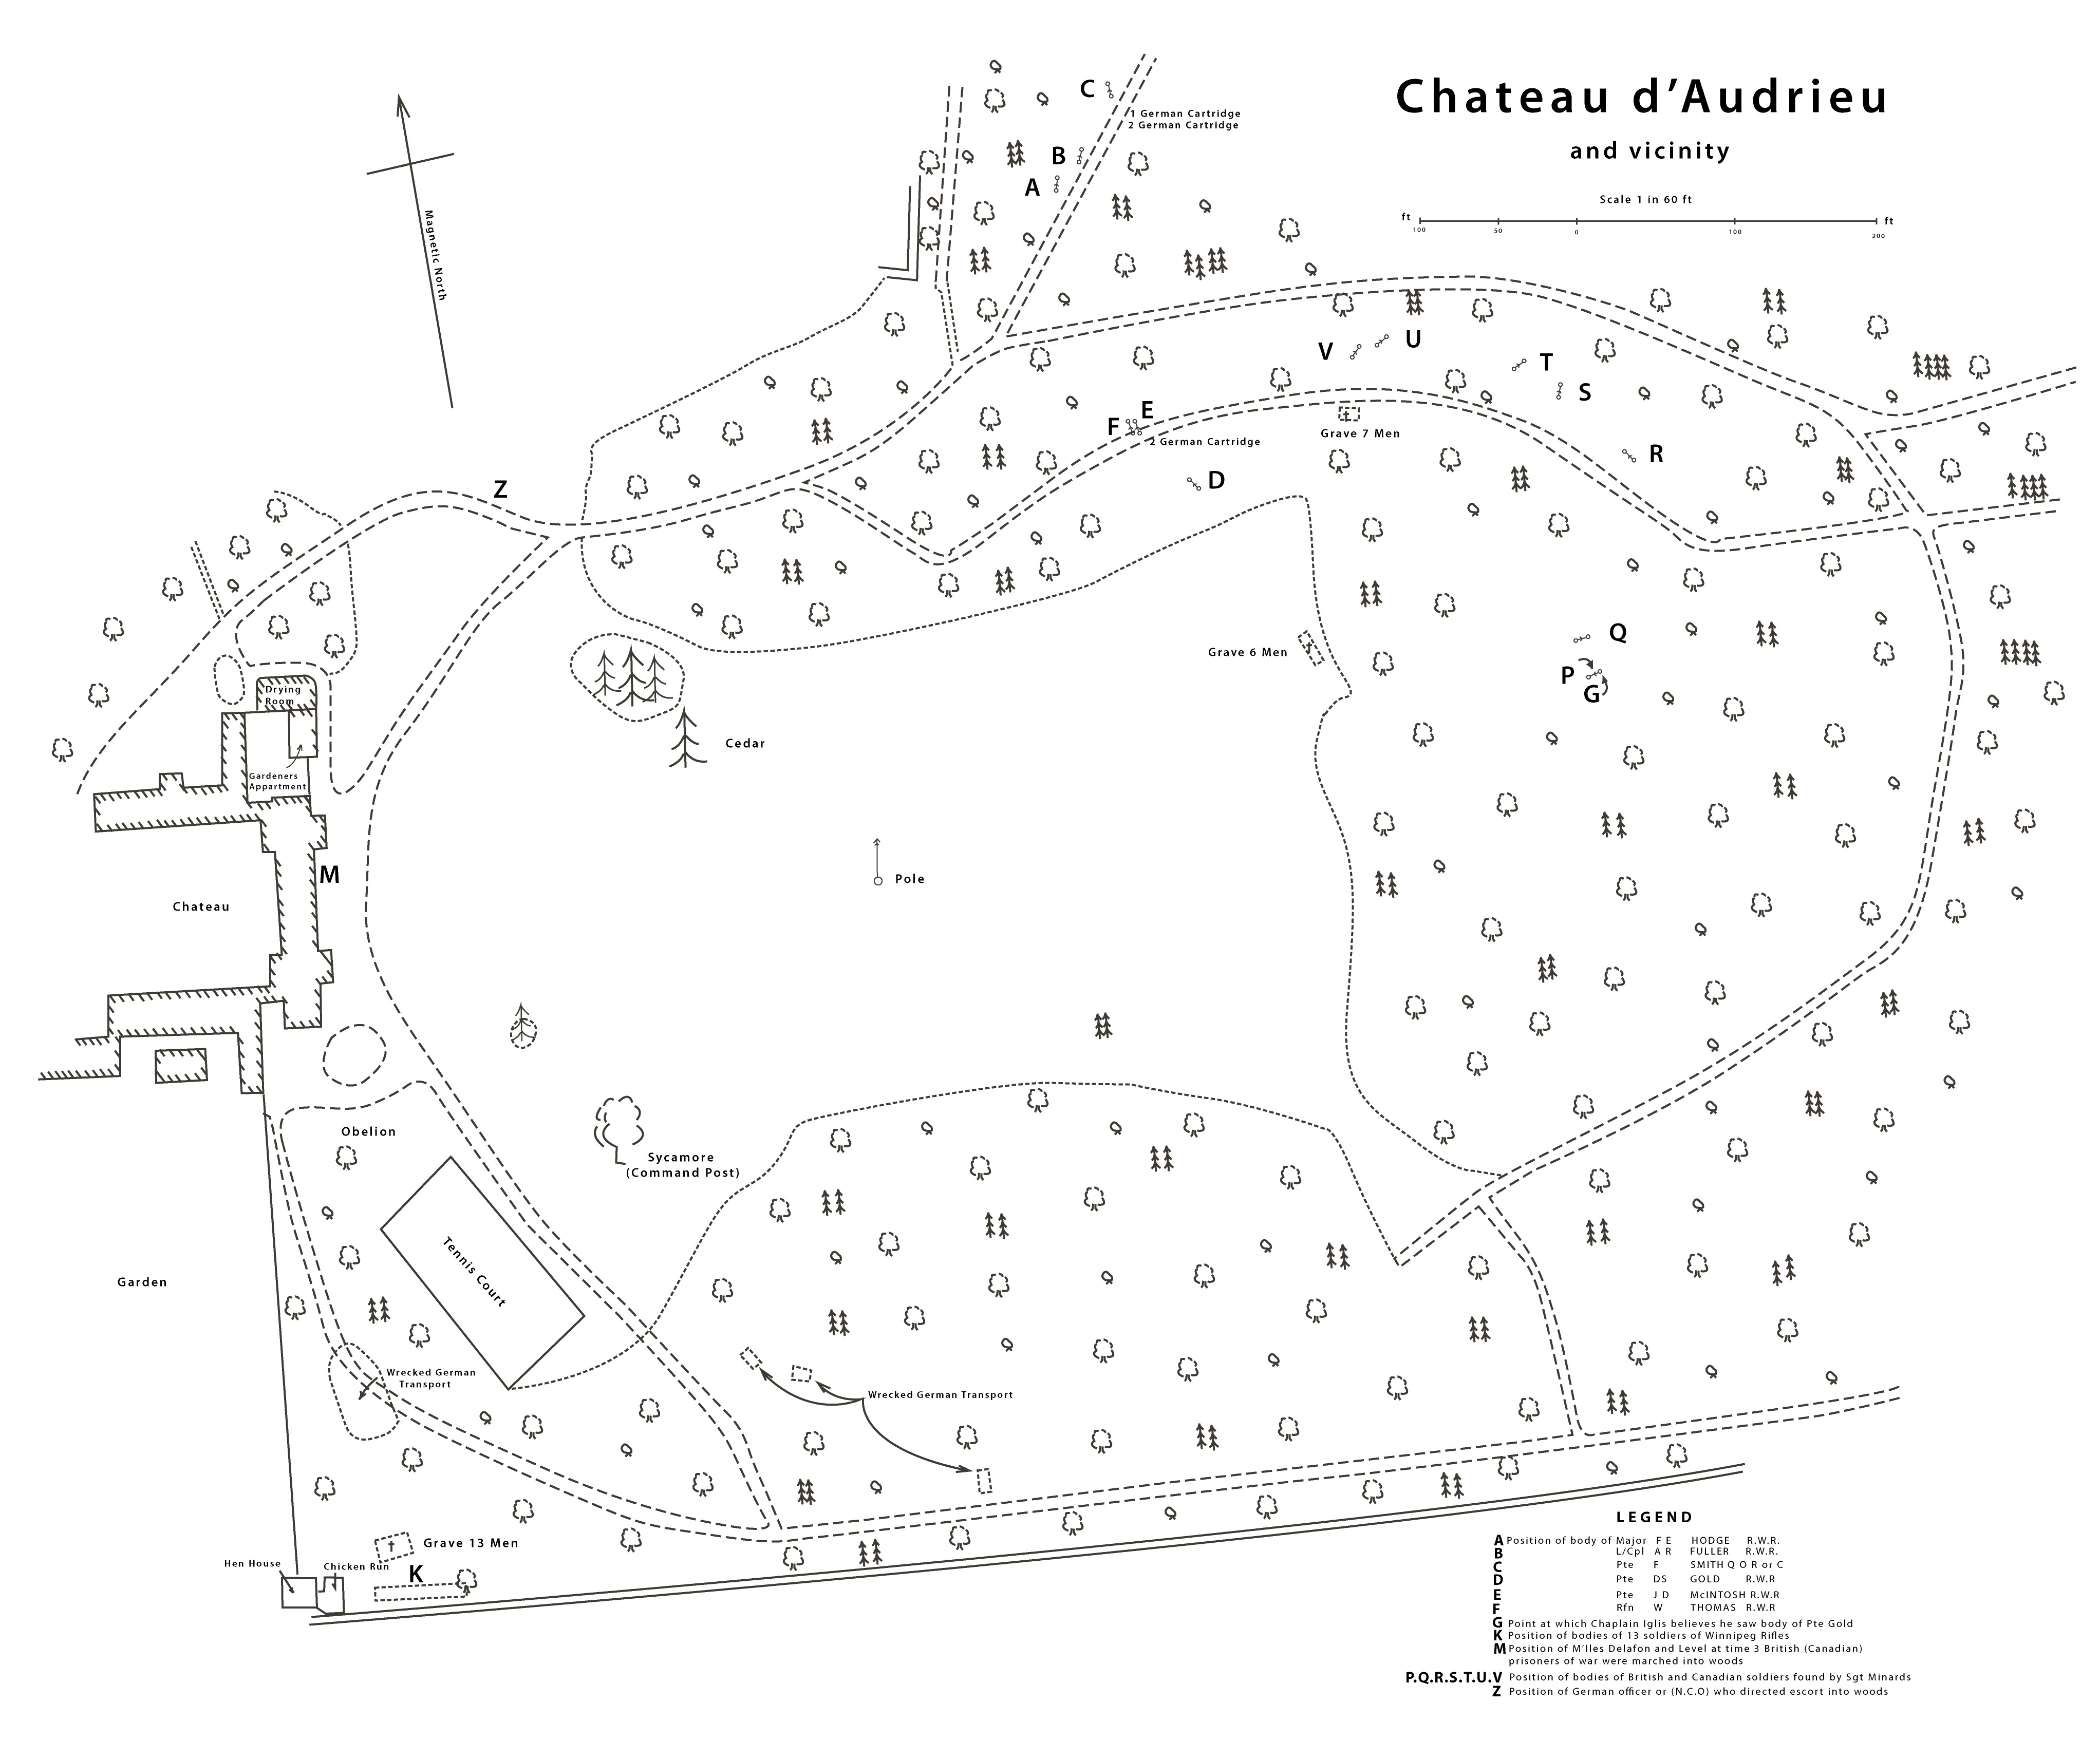 Map of Chateau d'Audrieu massacre